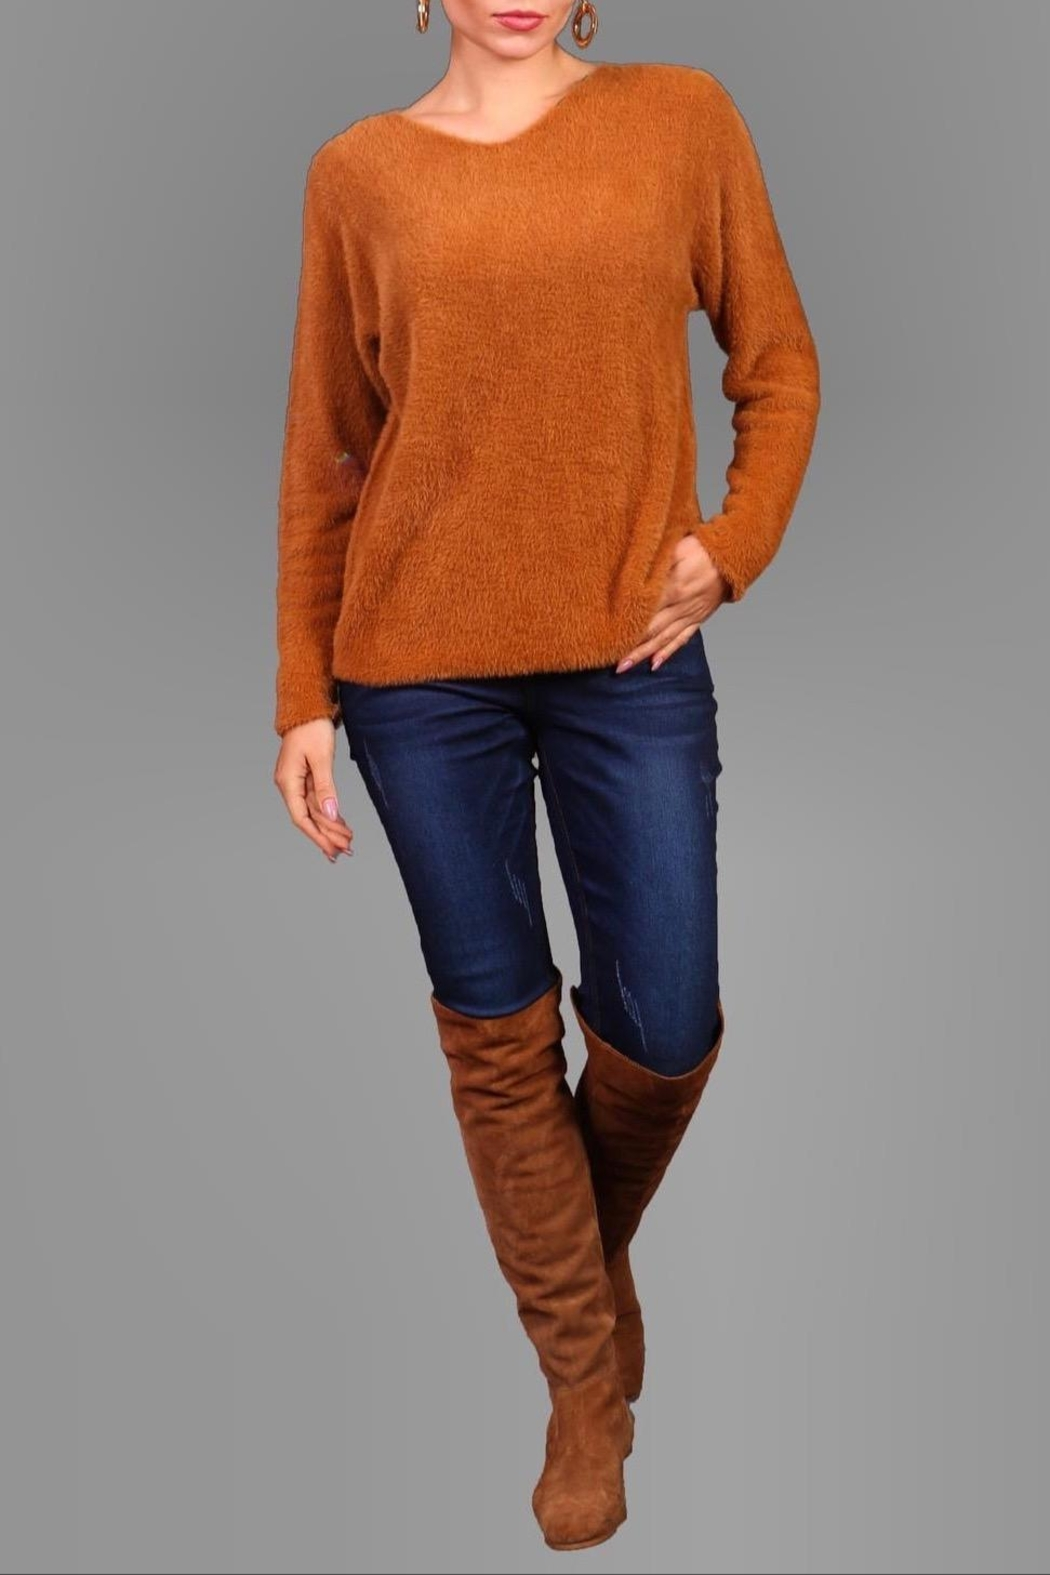 Bella Amore Super-Soft Camel Sweater - Front Full Image